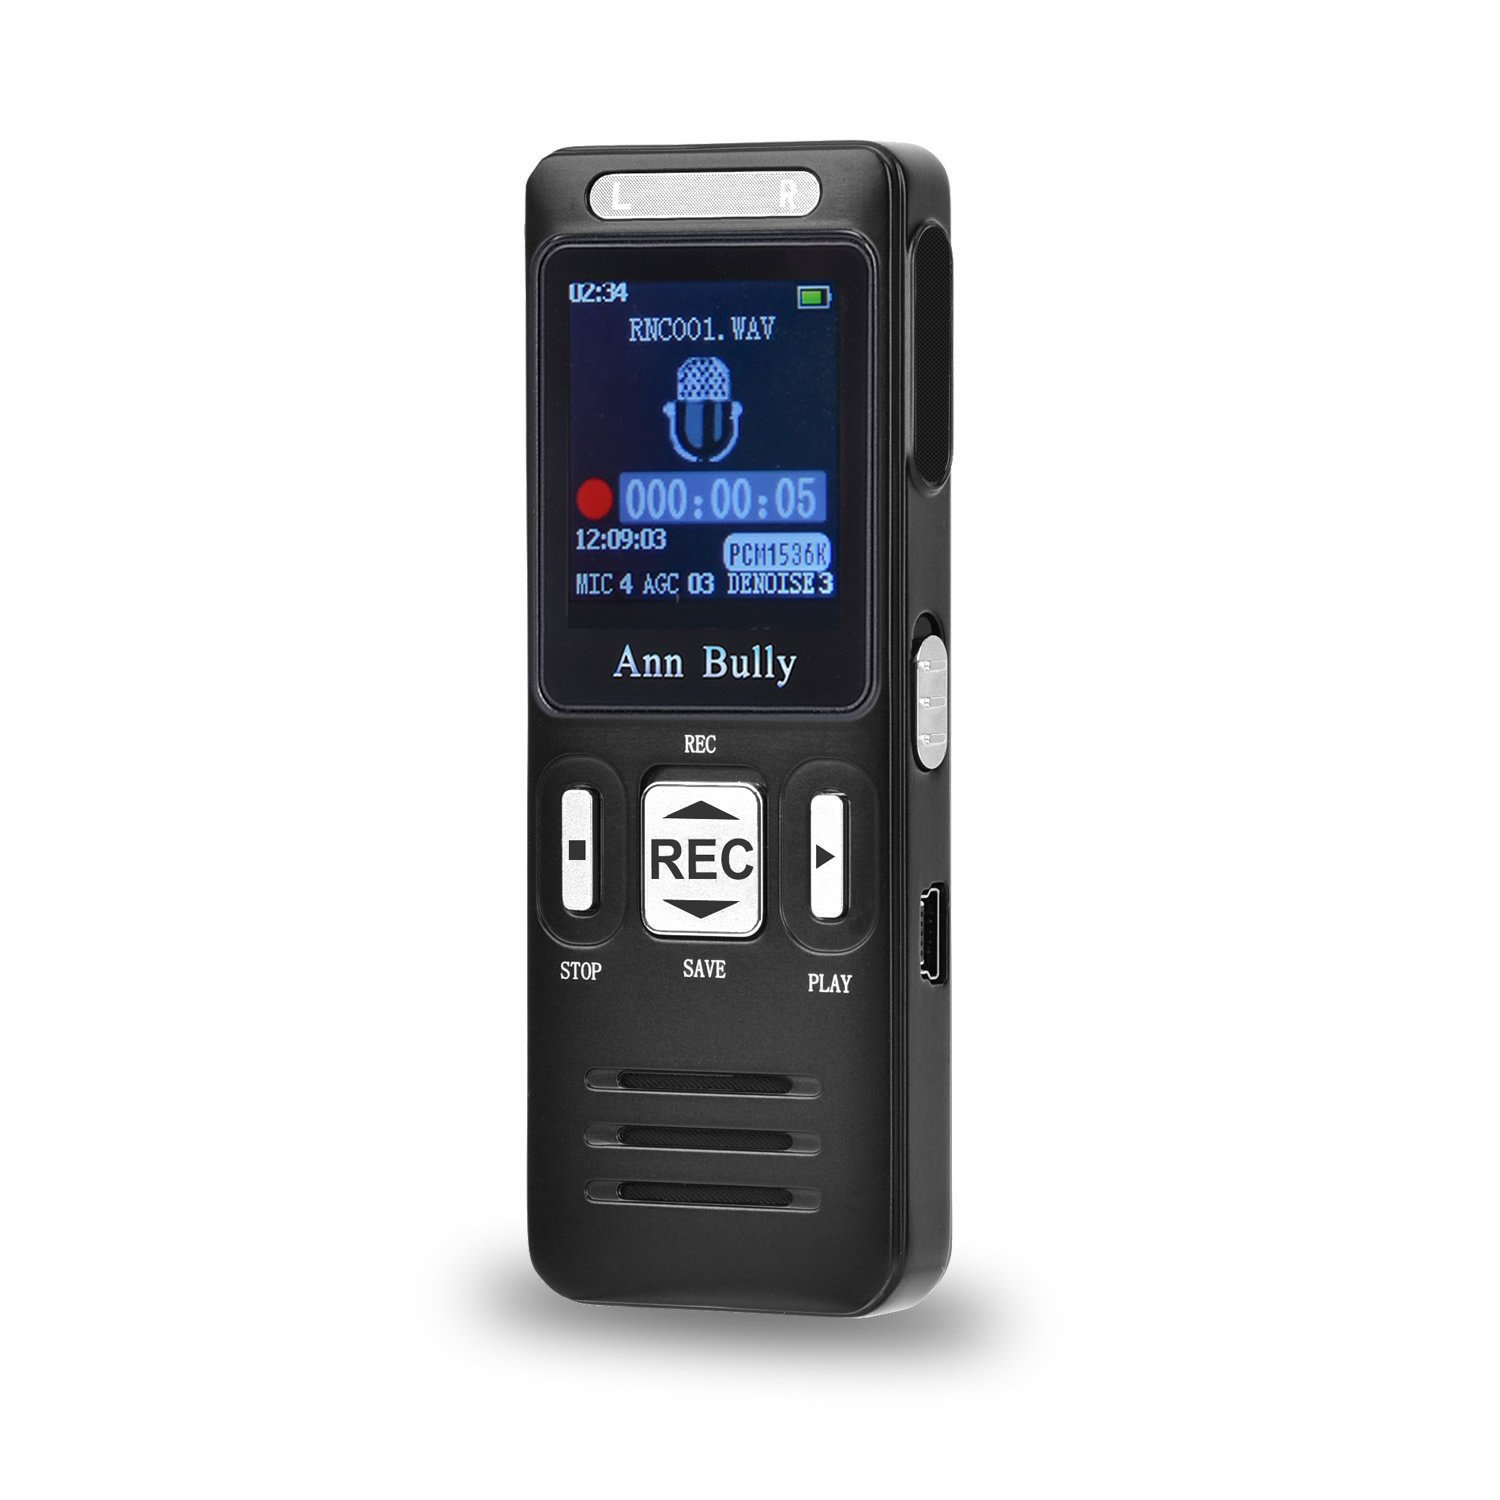 Voice Recorder AnnBully Digital Dictaphone MP3 Player Rechargeable 8GB 1536Kbps 560 hours with Mini USB Port Fast/Slow Playback A-B repeat functionality Voice activation